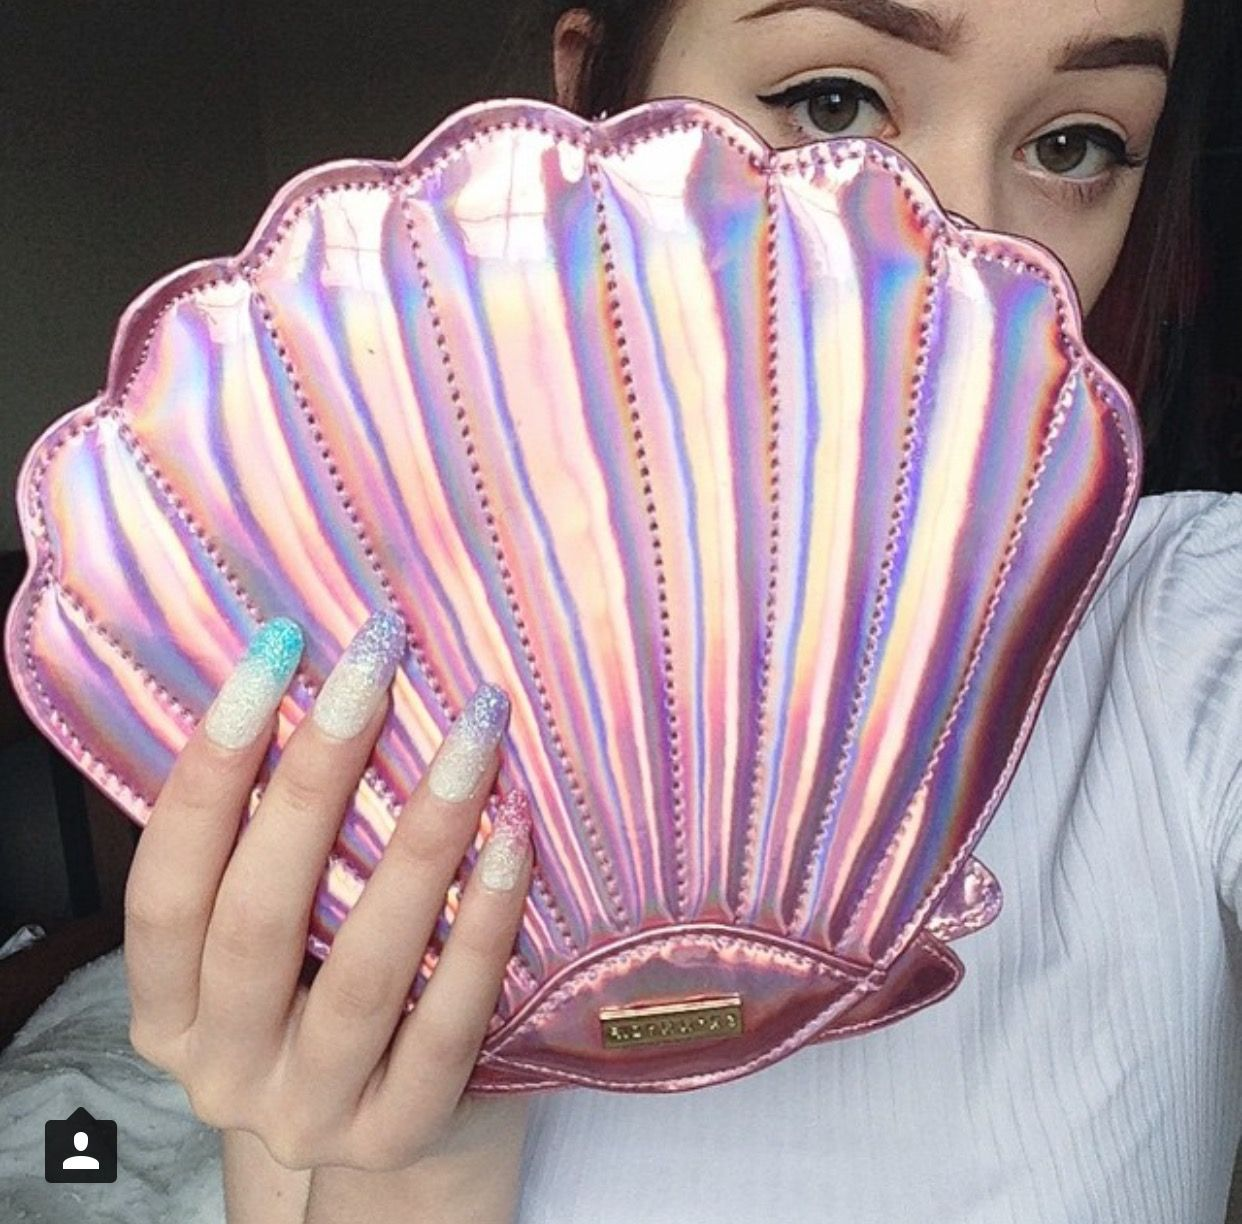 Check out our super mermaid inspired selfies this week here http://www.skinnydiplondon.com/blogs/news/20289025-skinnydipselfies-of-the-week #mermaid #skinnydip #selfies